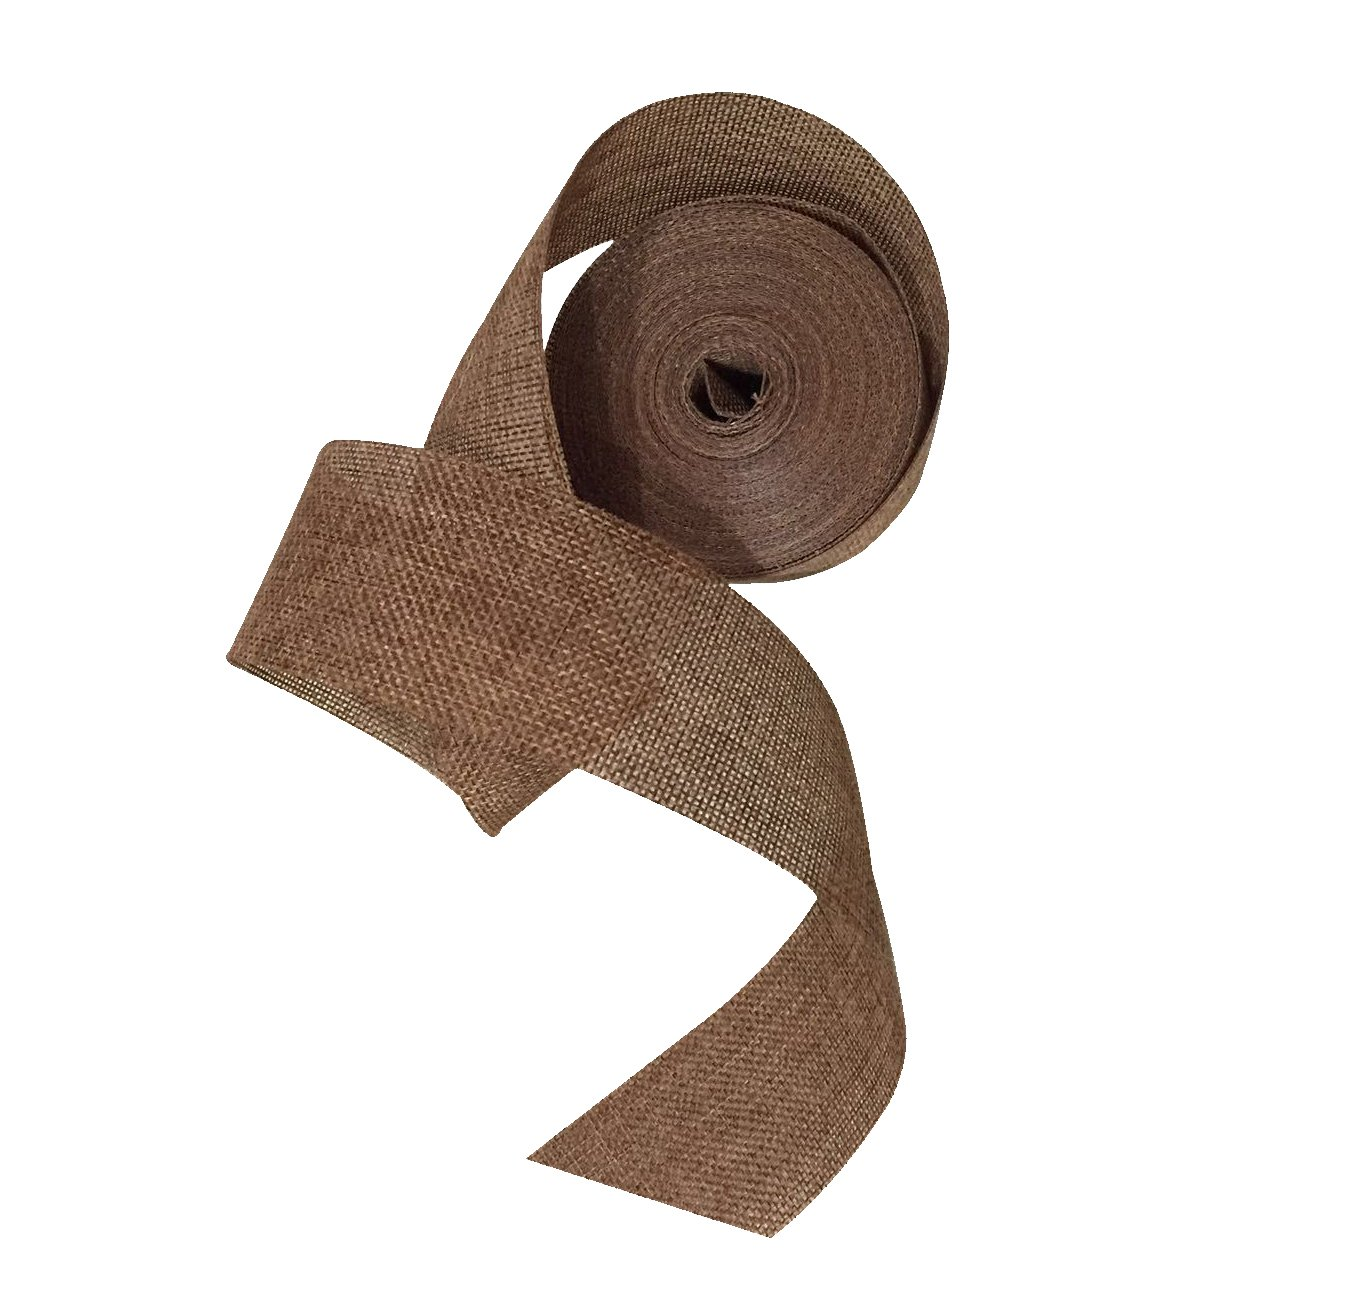 Burlap Ribbon 2 X 10 Yards Perfect for Weddings, Tie-Backs, Sashes, Table Runners, Gift Wrap (Red) AUTULET